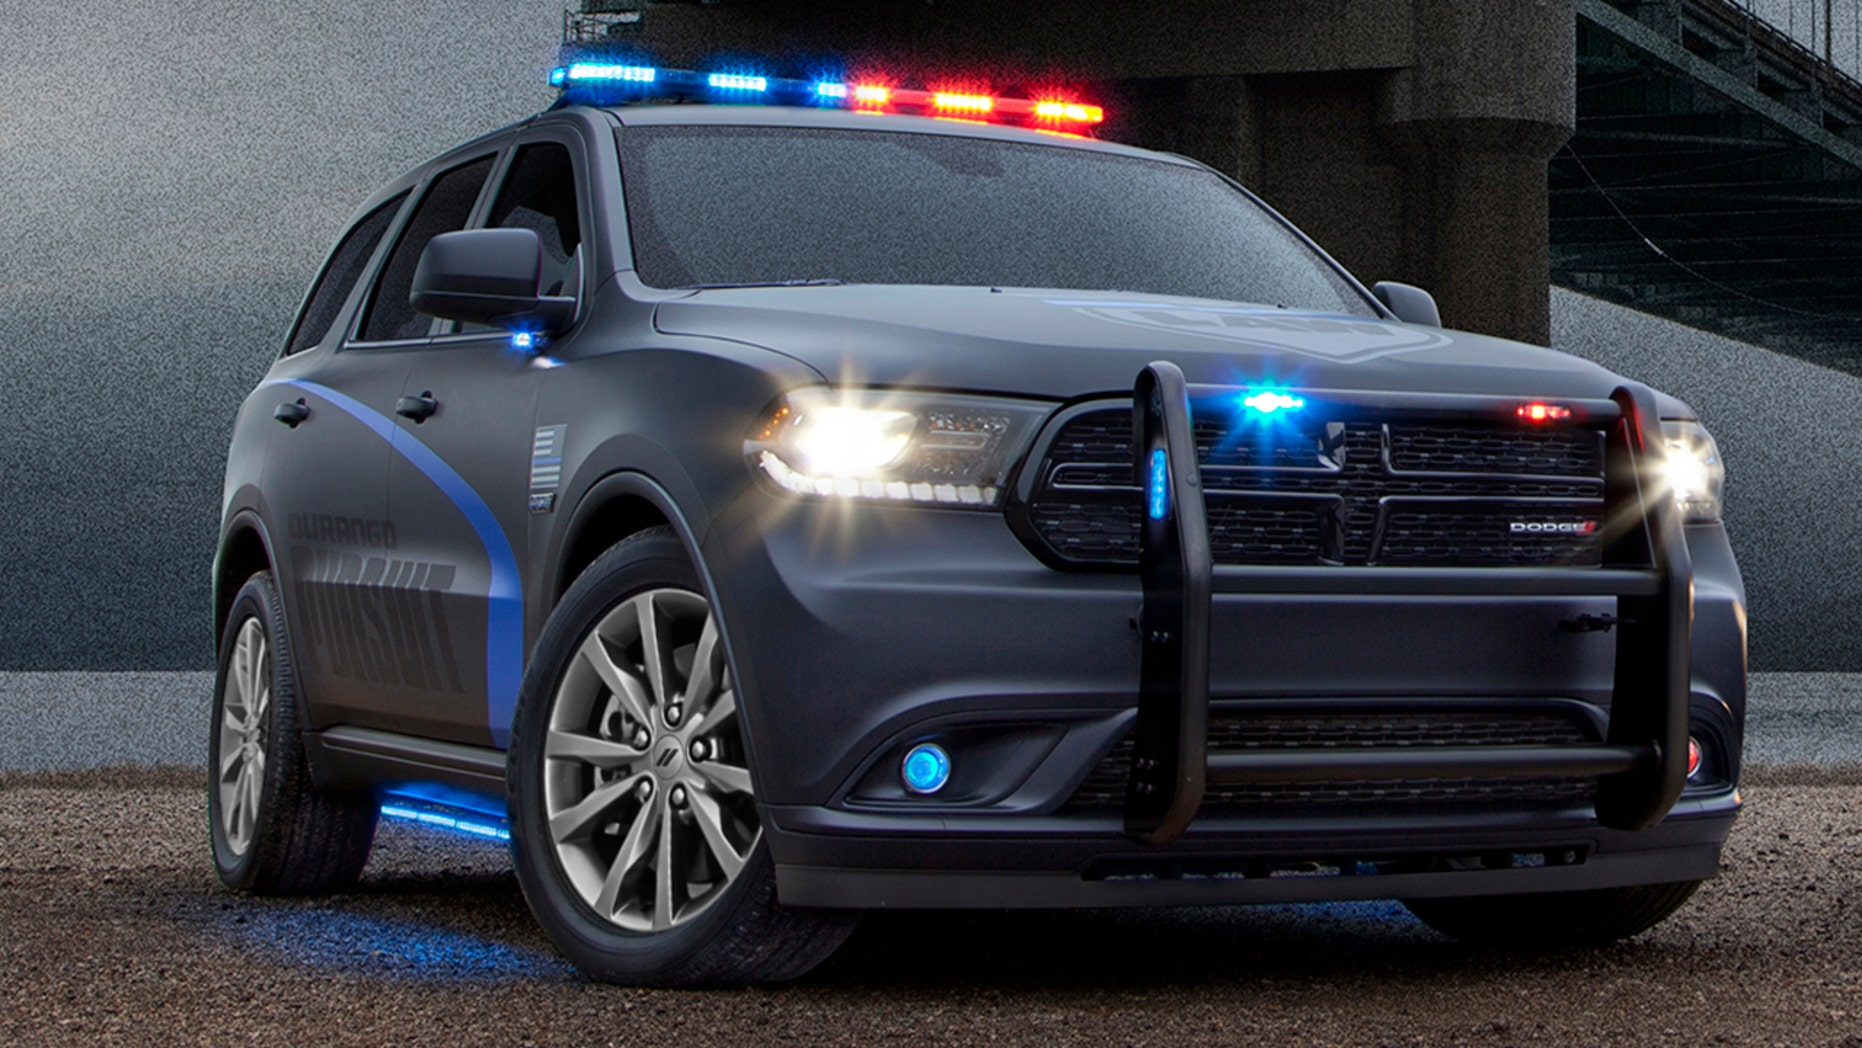 Dodge Durango Police Car >> The Dodge Durango Pursuit Police Vehicle Is Ready To Chase Some Bad